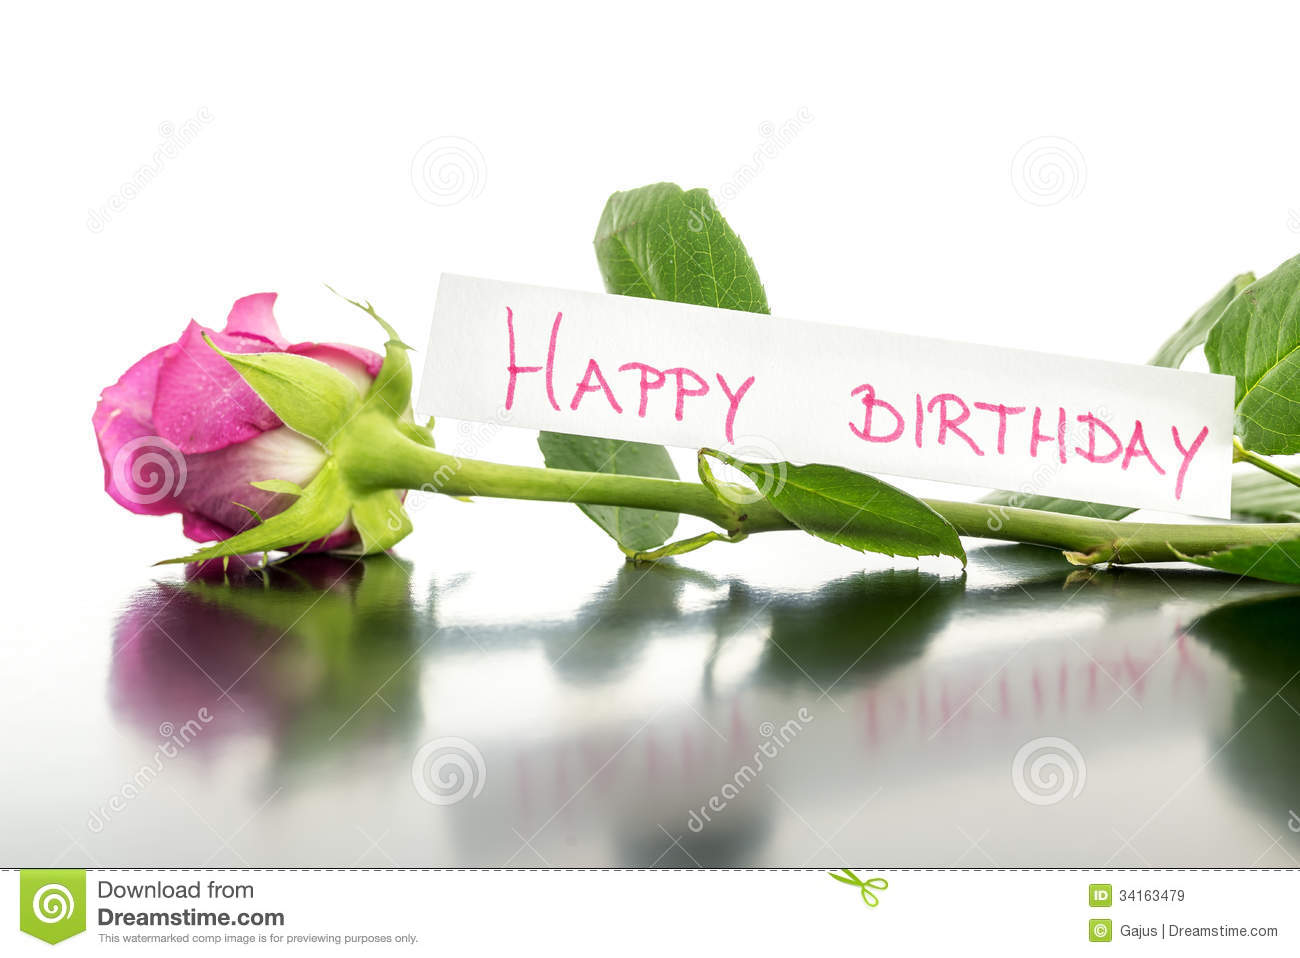 Happy birthday flower stock image image of celebration 34163479 download comp izmirmasajfo